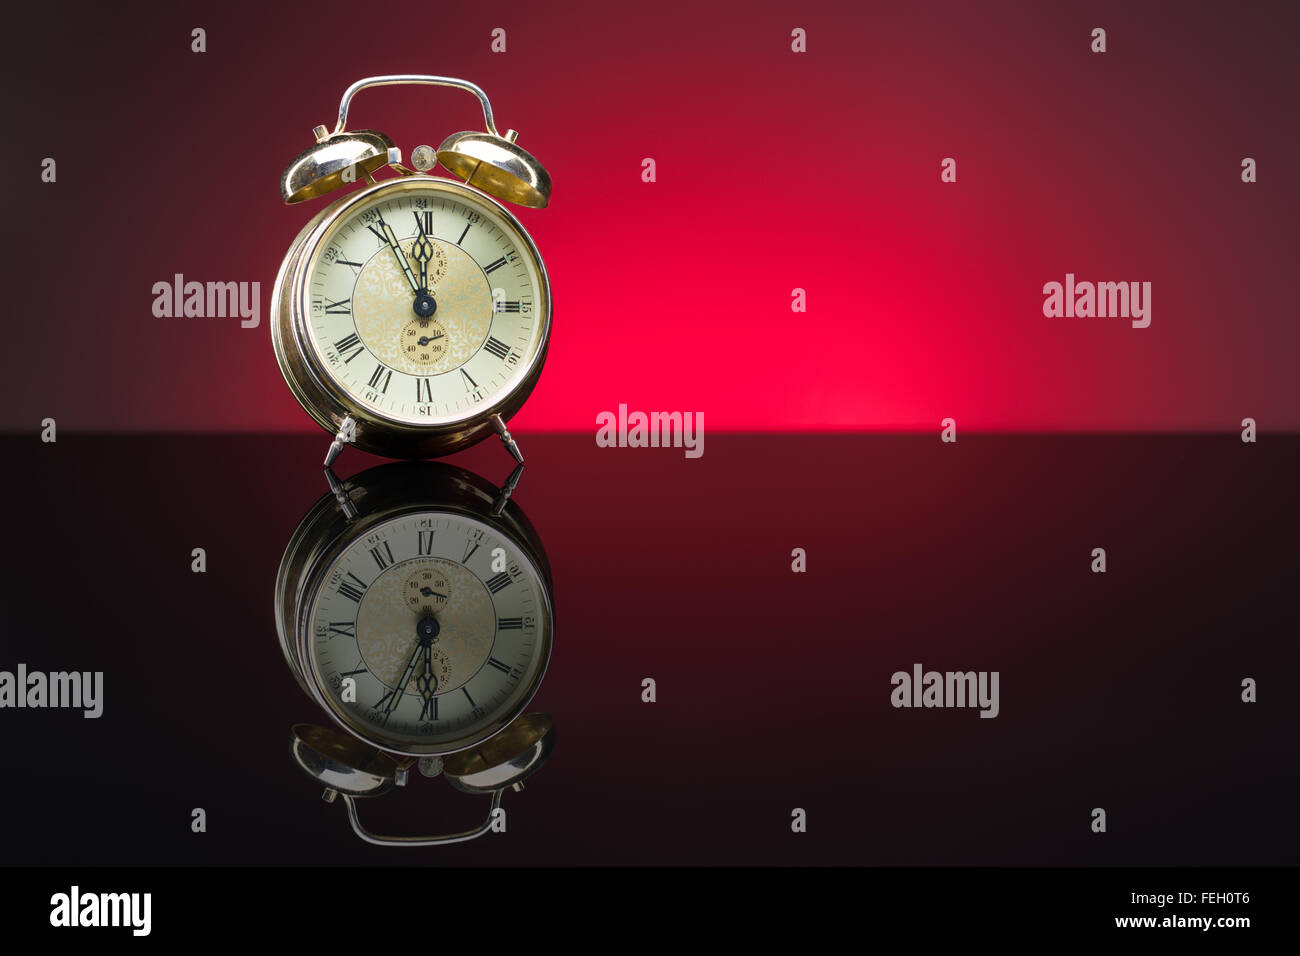 Vintage alarm clock showing five minutes to twelve, red background, copy space Stock Photo